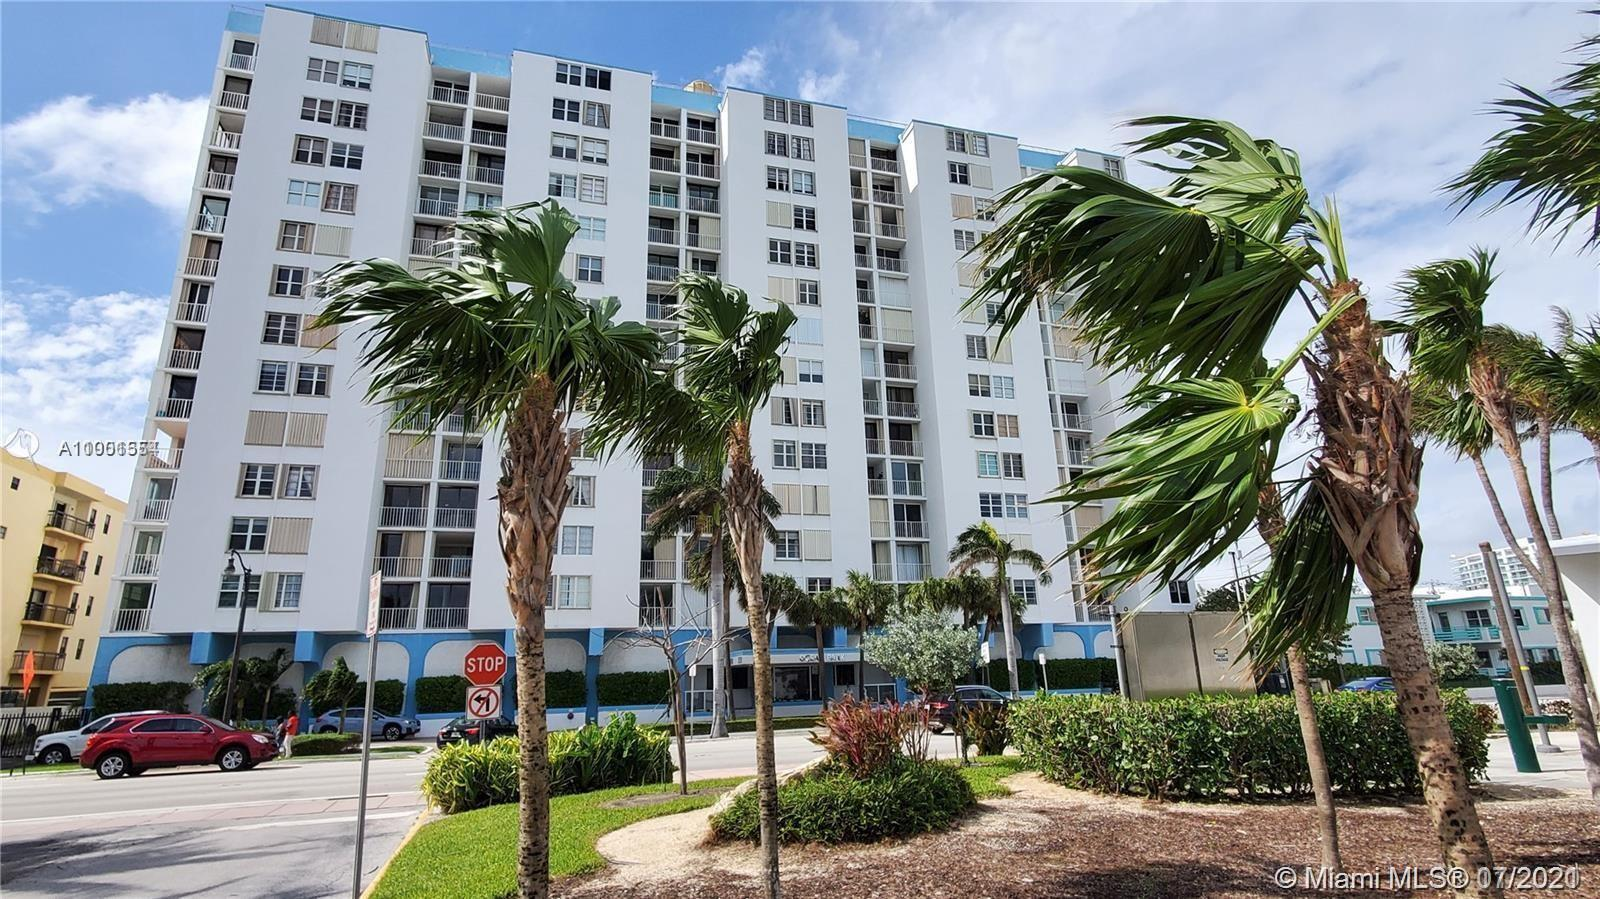 Direct Ocean Views the minute you walk in!! Views from balcony & master suite! Gorgeous & Nicely lai